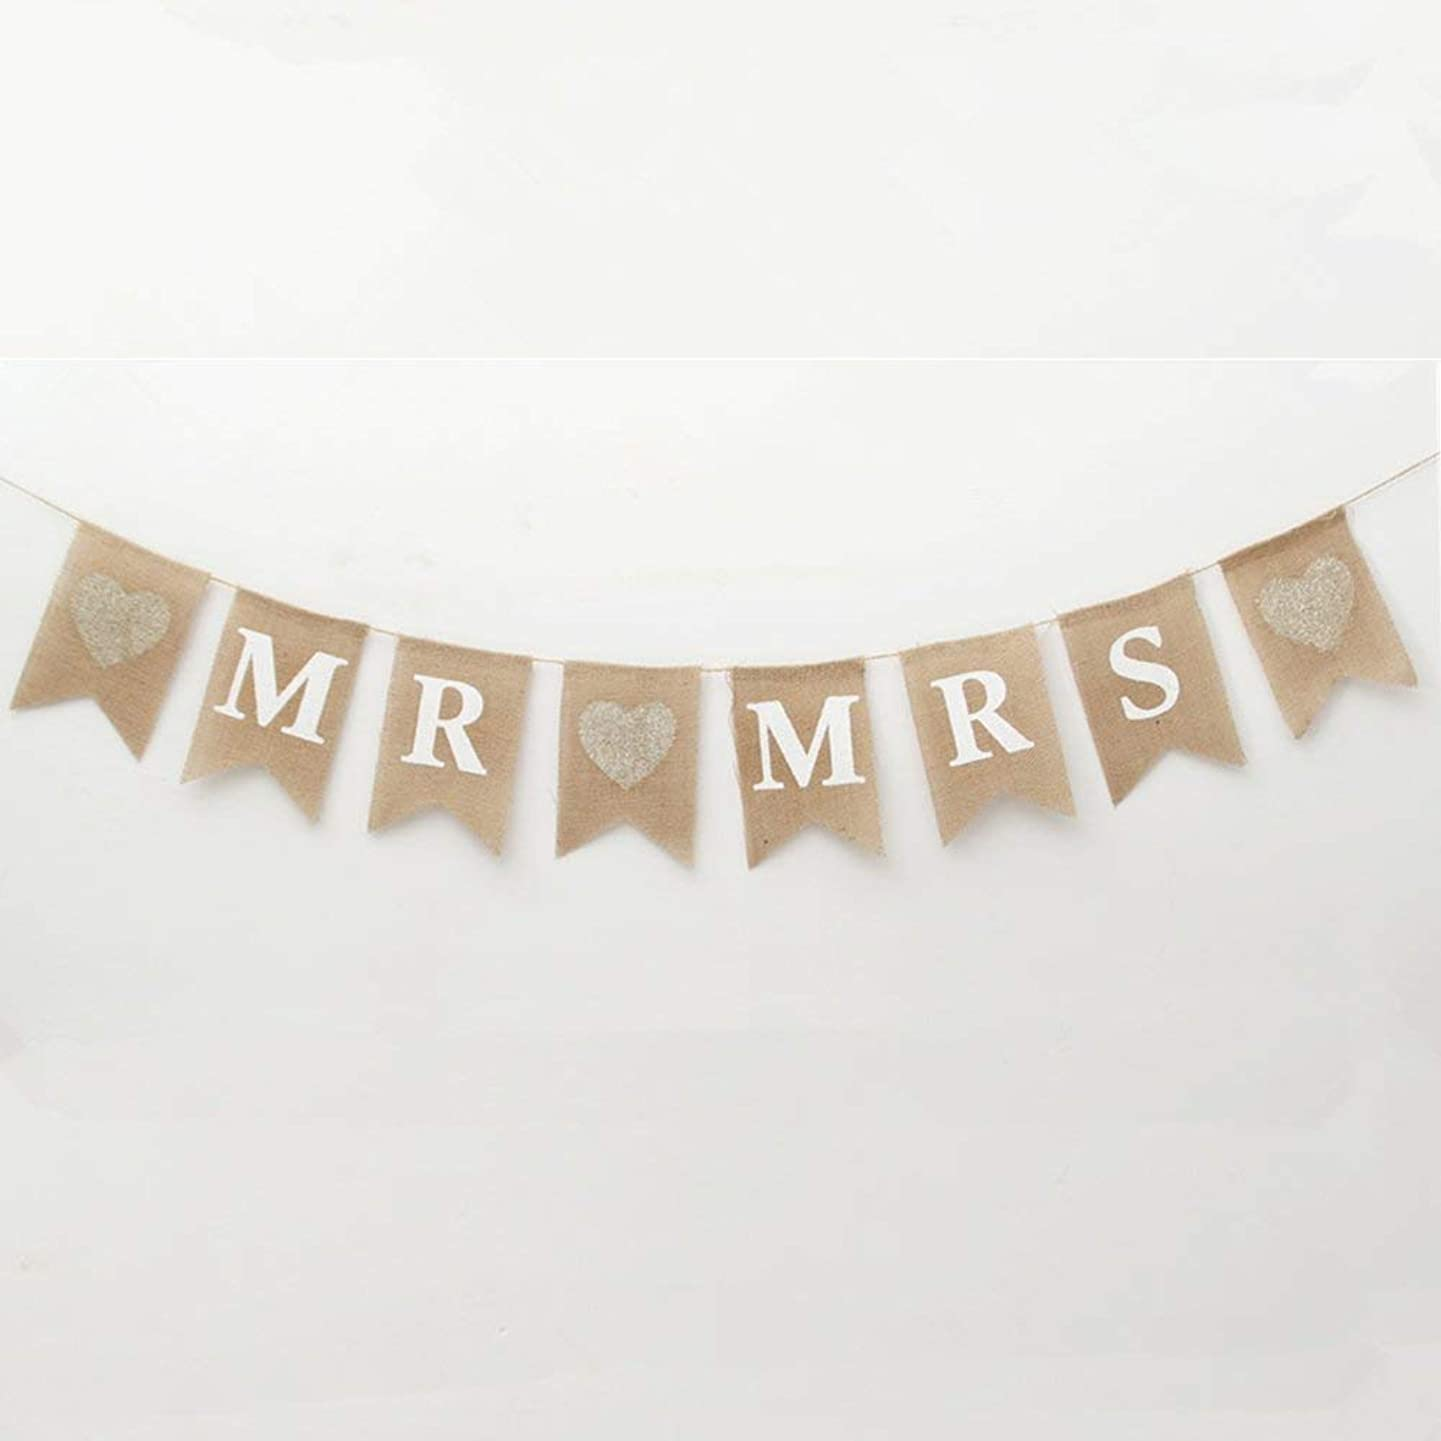 MR and MRS Burlap Flag Bunting Banners Garland Linen,Environmental,Protection,Vintage Rustic Wedding Table Hanging Signs for Bridal Shower, Wedding Photo Booth Props Backdrop Decoration 8 Pcs Flag